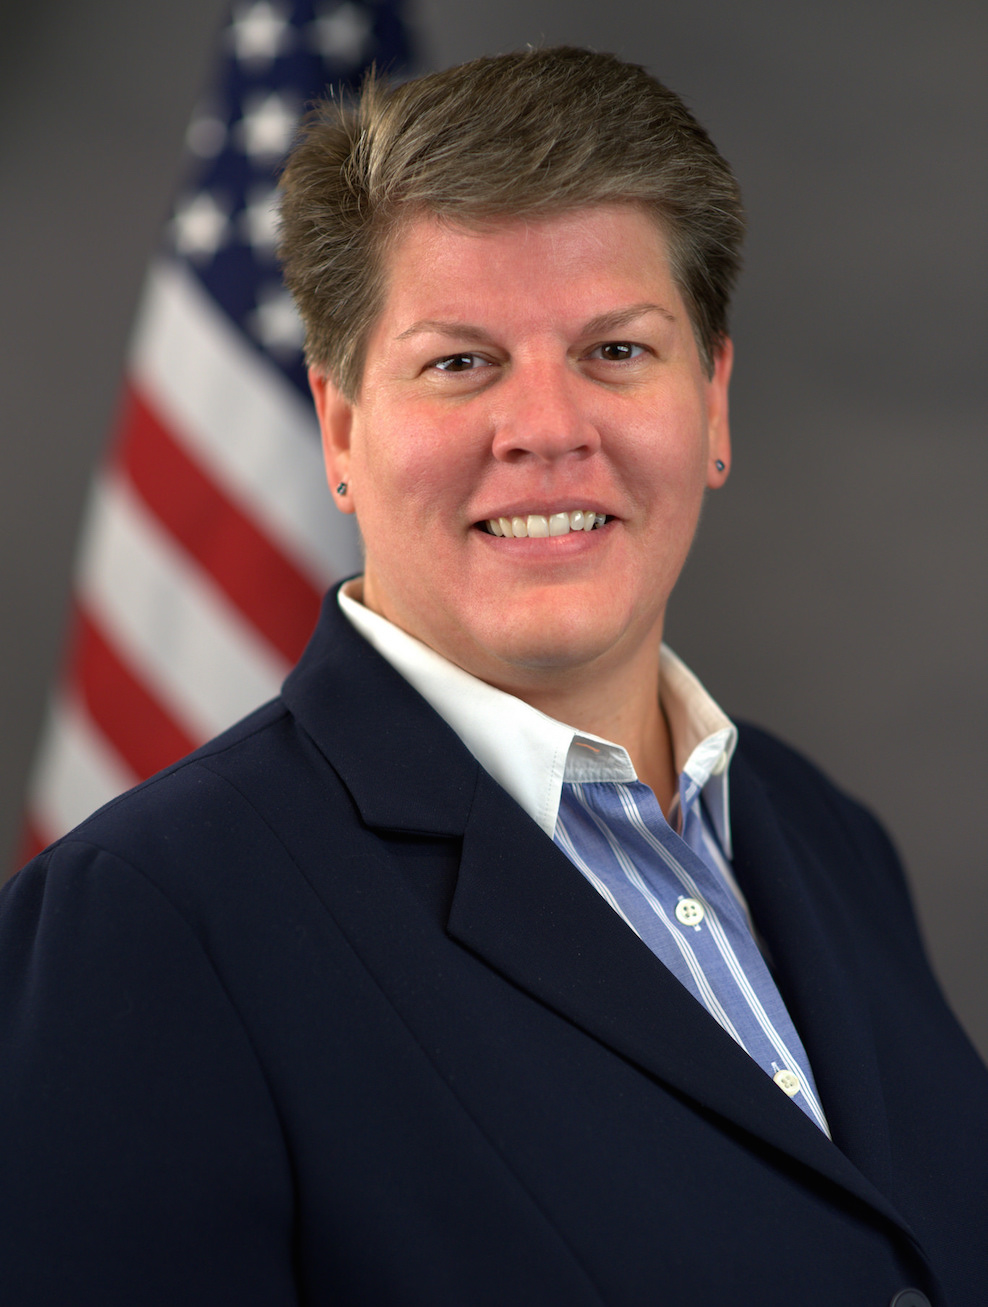 Lori j schock - Office of investor education and advocacy ...